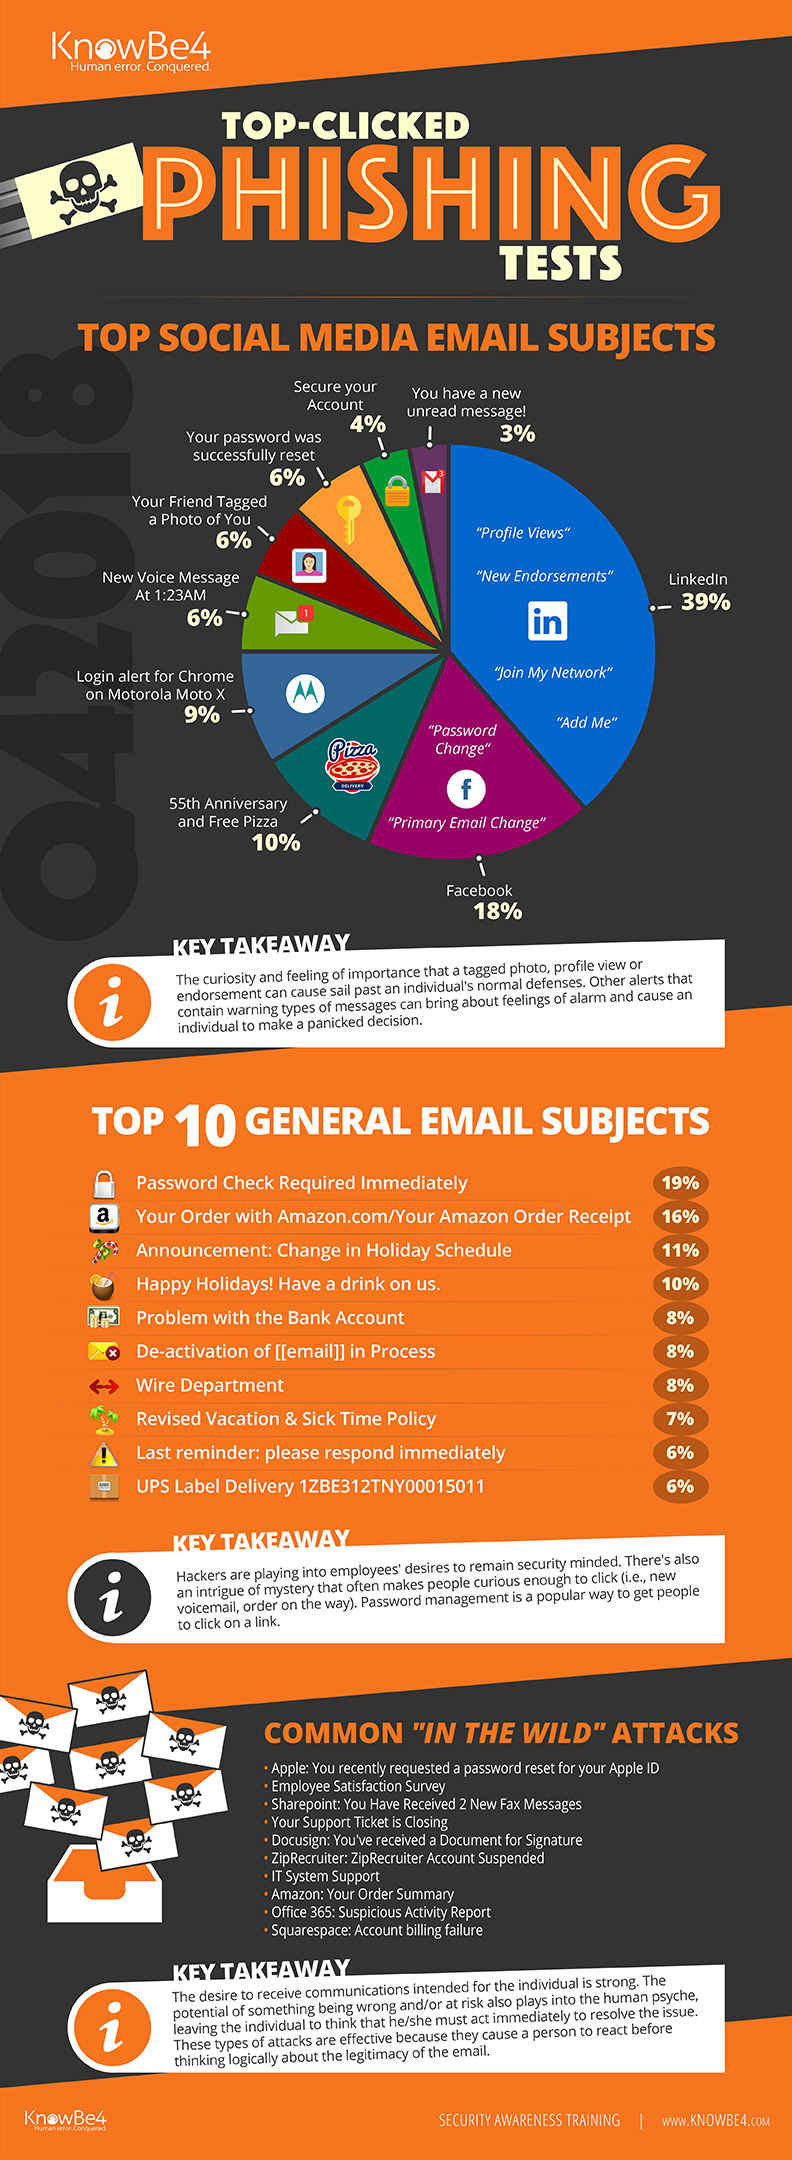 Q4 2018 Top-Clicked Phishing Email Subjects from KnowBe4 Infographic